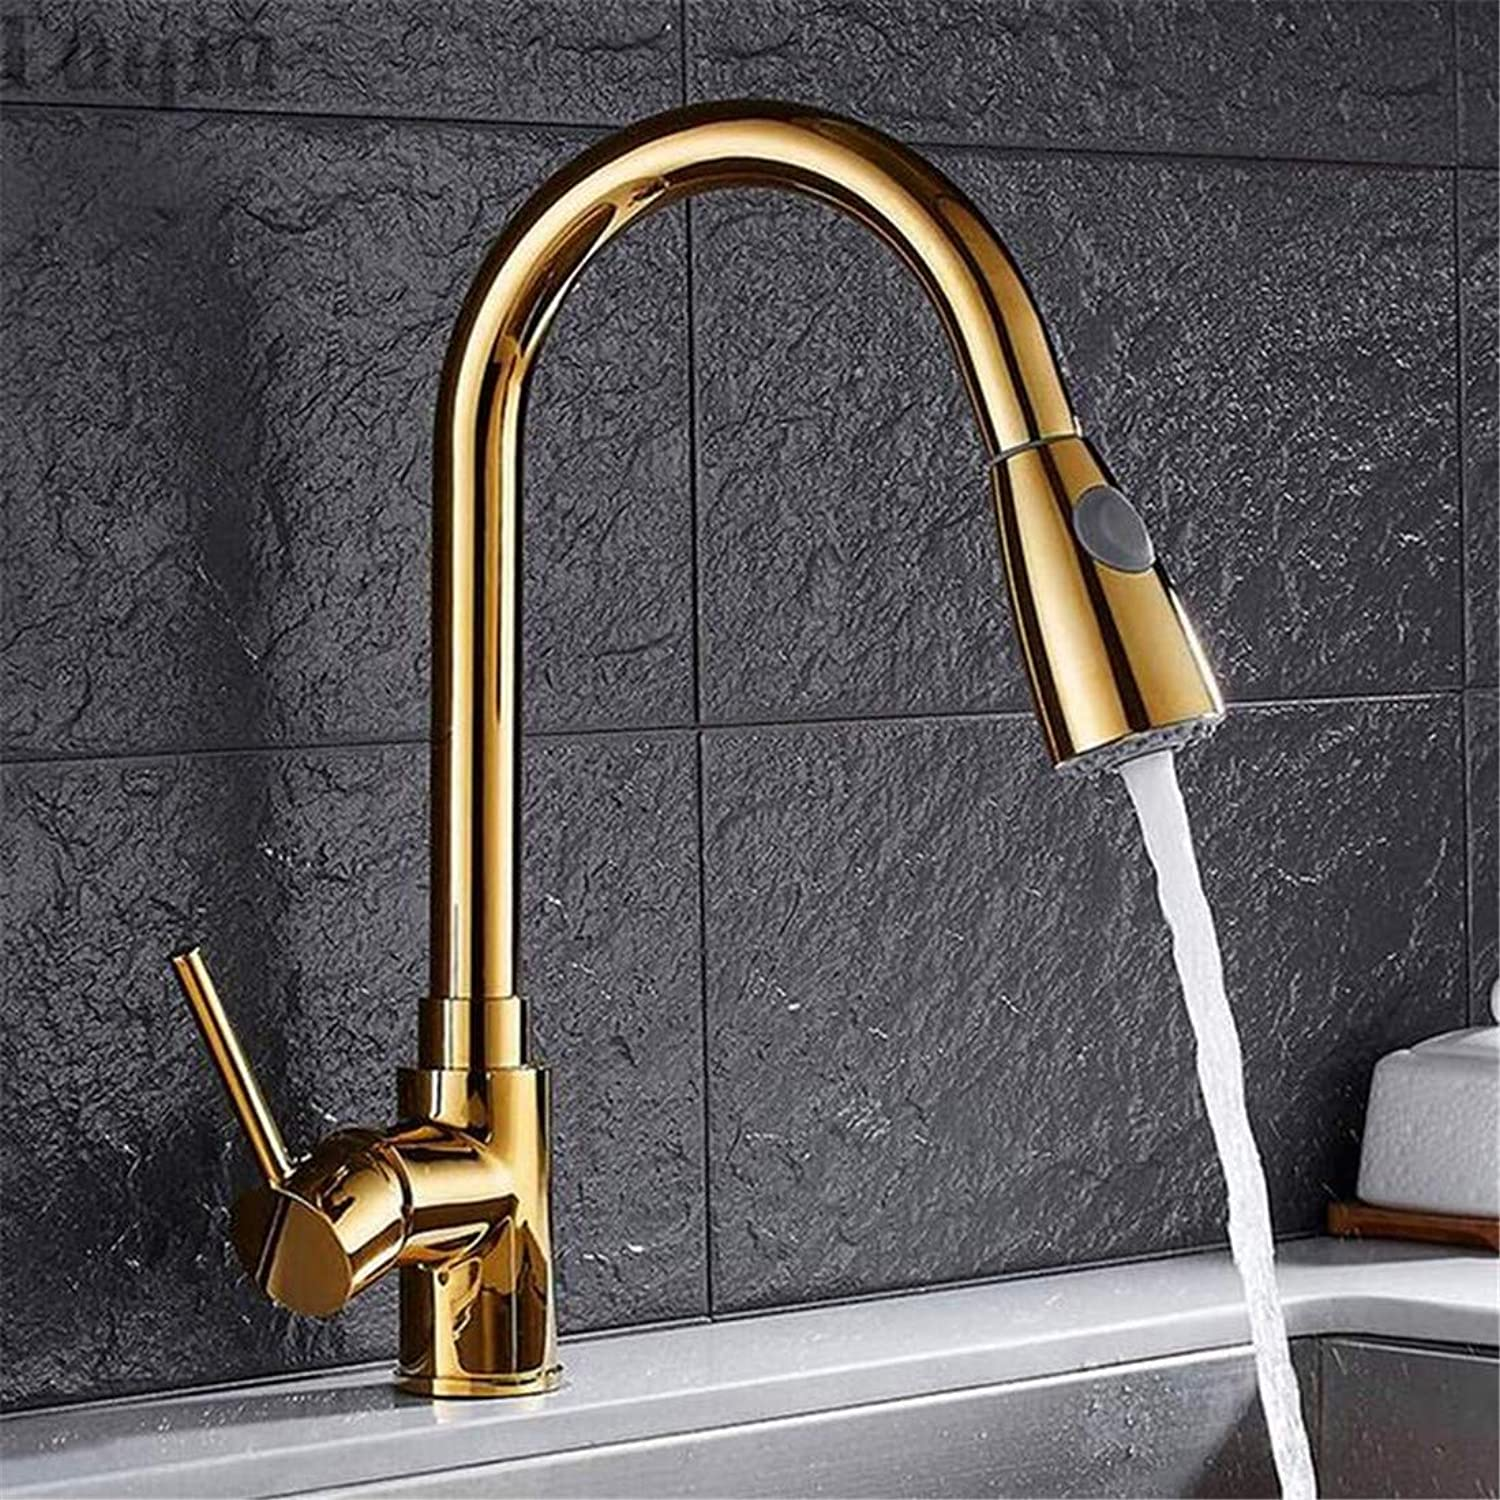 Faucet Vintage Plated Luxury Plating Faucet Faucet Washbasin Mixer Cold and Hot Water Tap Kitchen Sink Faucet Taps Mixer with Pull Down Shower Head